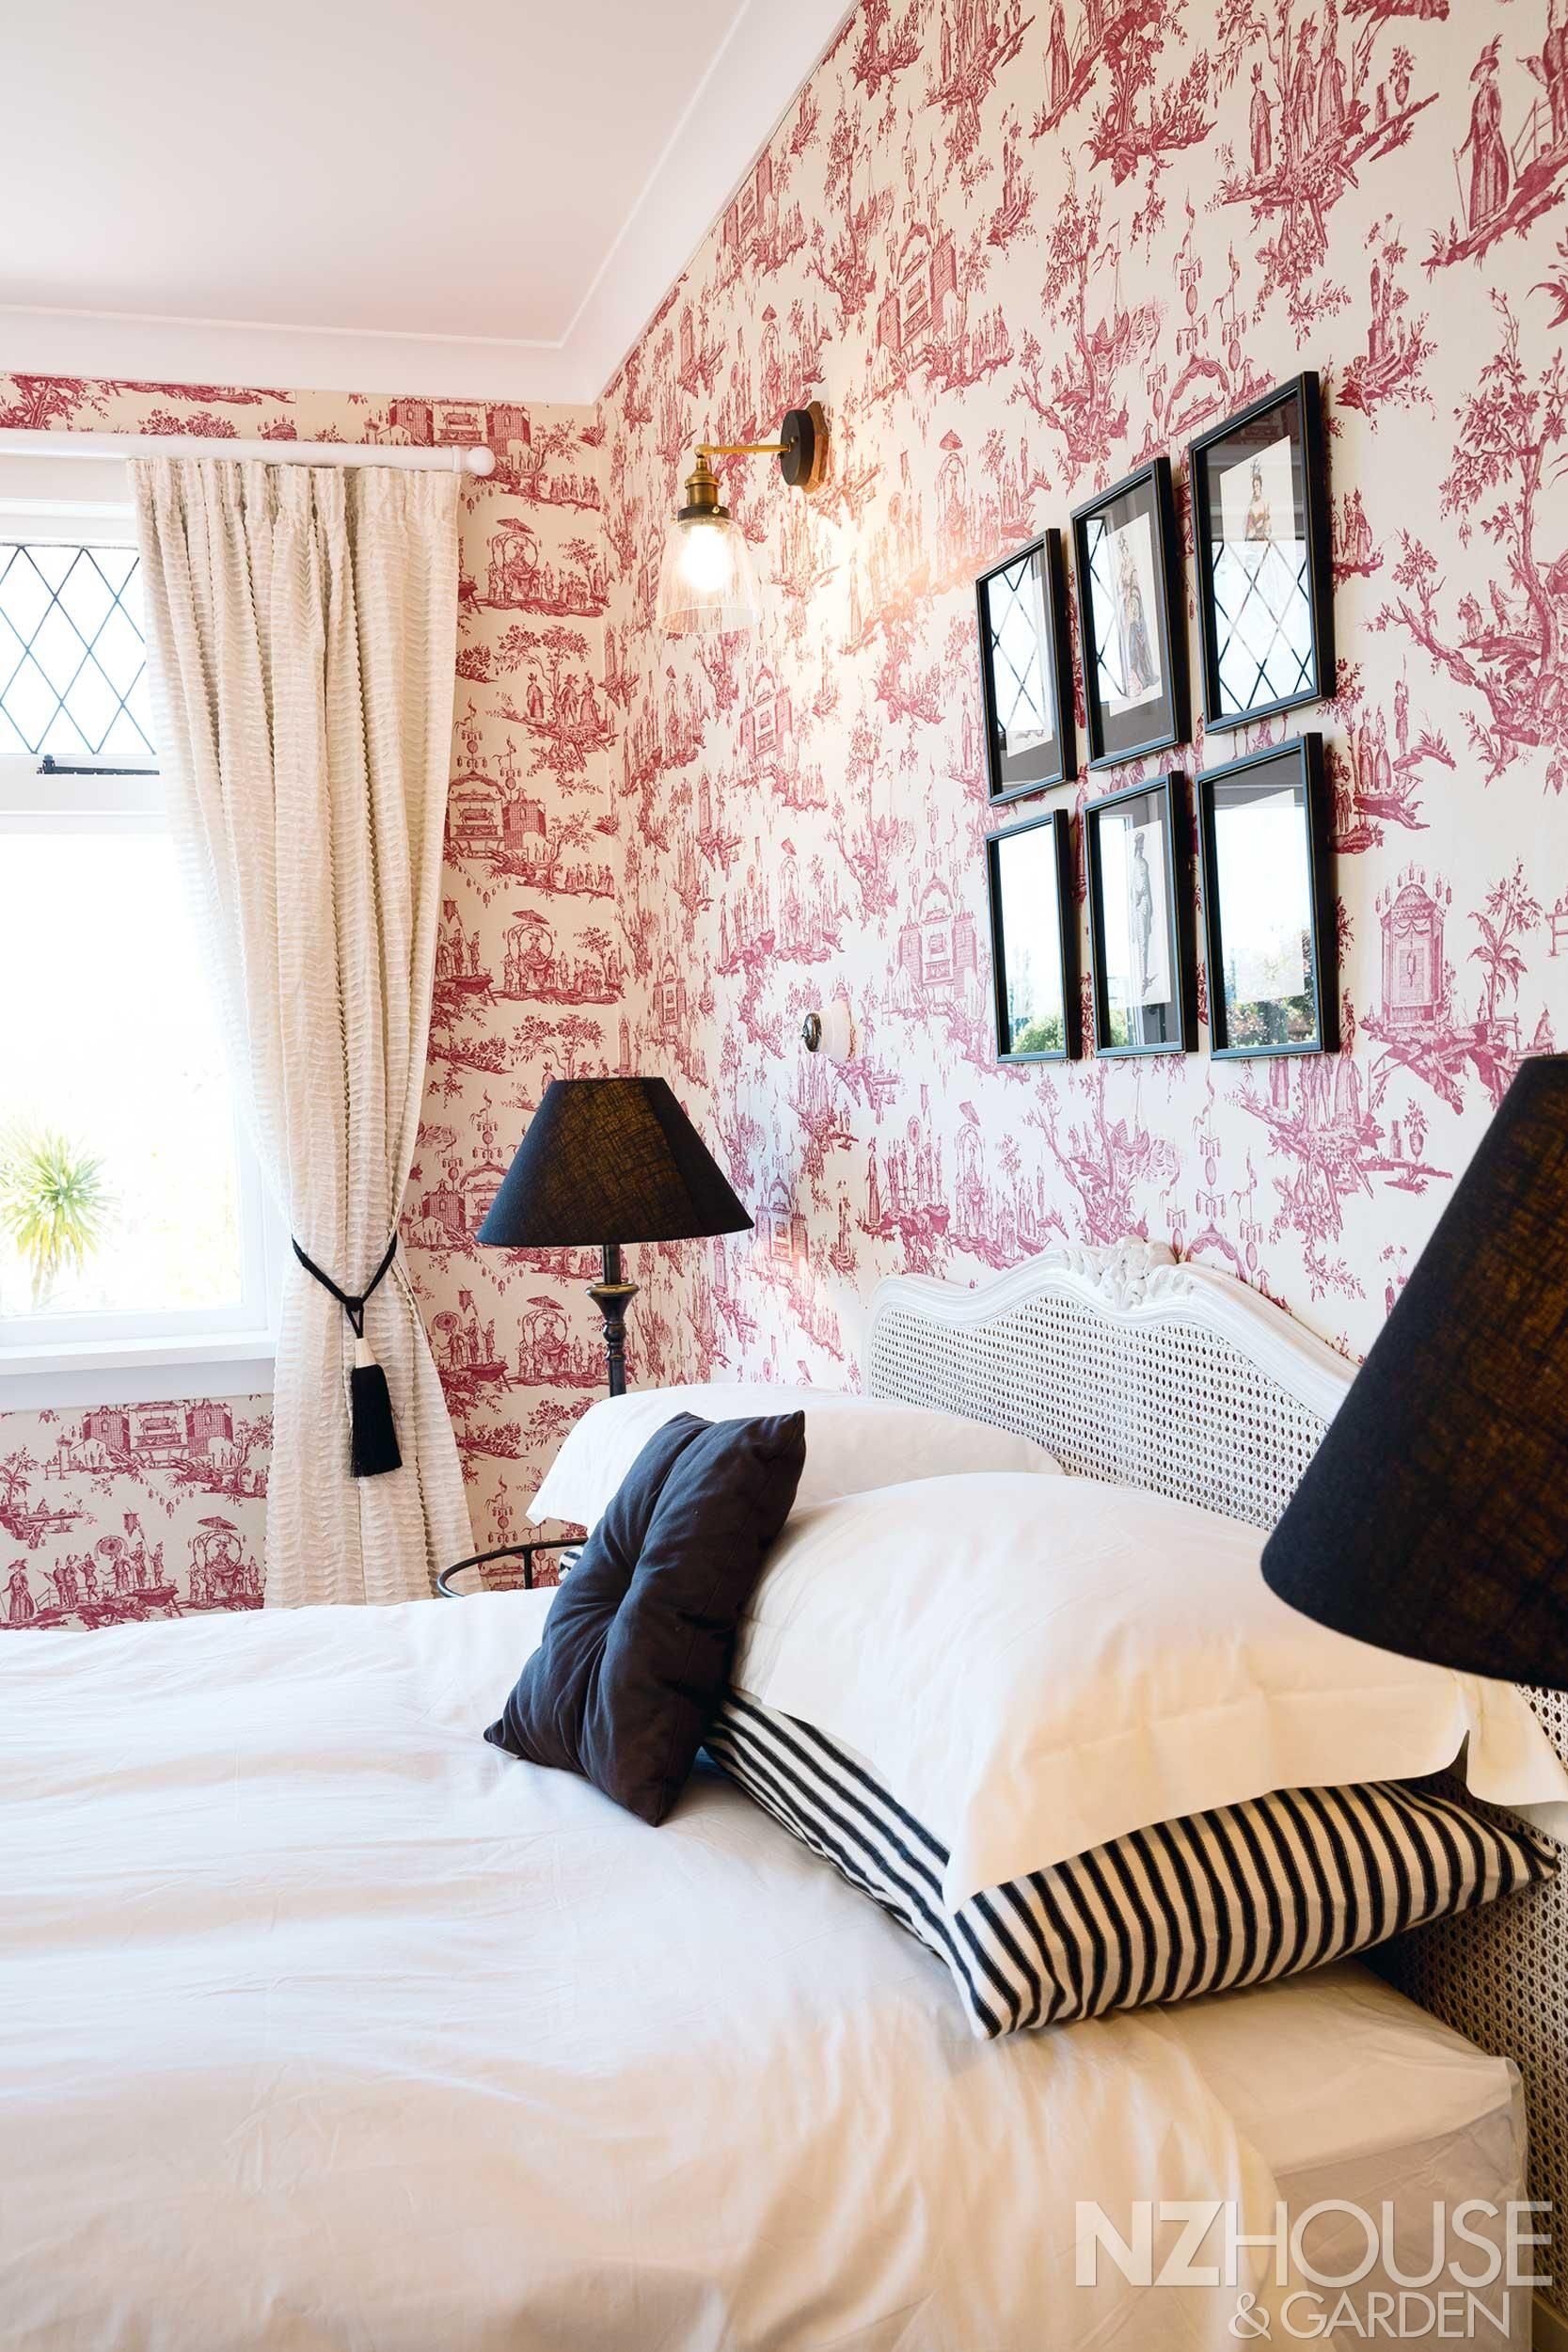 The Red Toile Wallpaper In The Guest Room Has Been Known To Polarise  Opinion: U201cBut,u201d Says Rebecca, U201cIu0027m At That Age And Stage Where Youu0027ve Got  To Have A ...